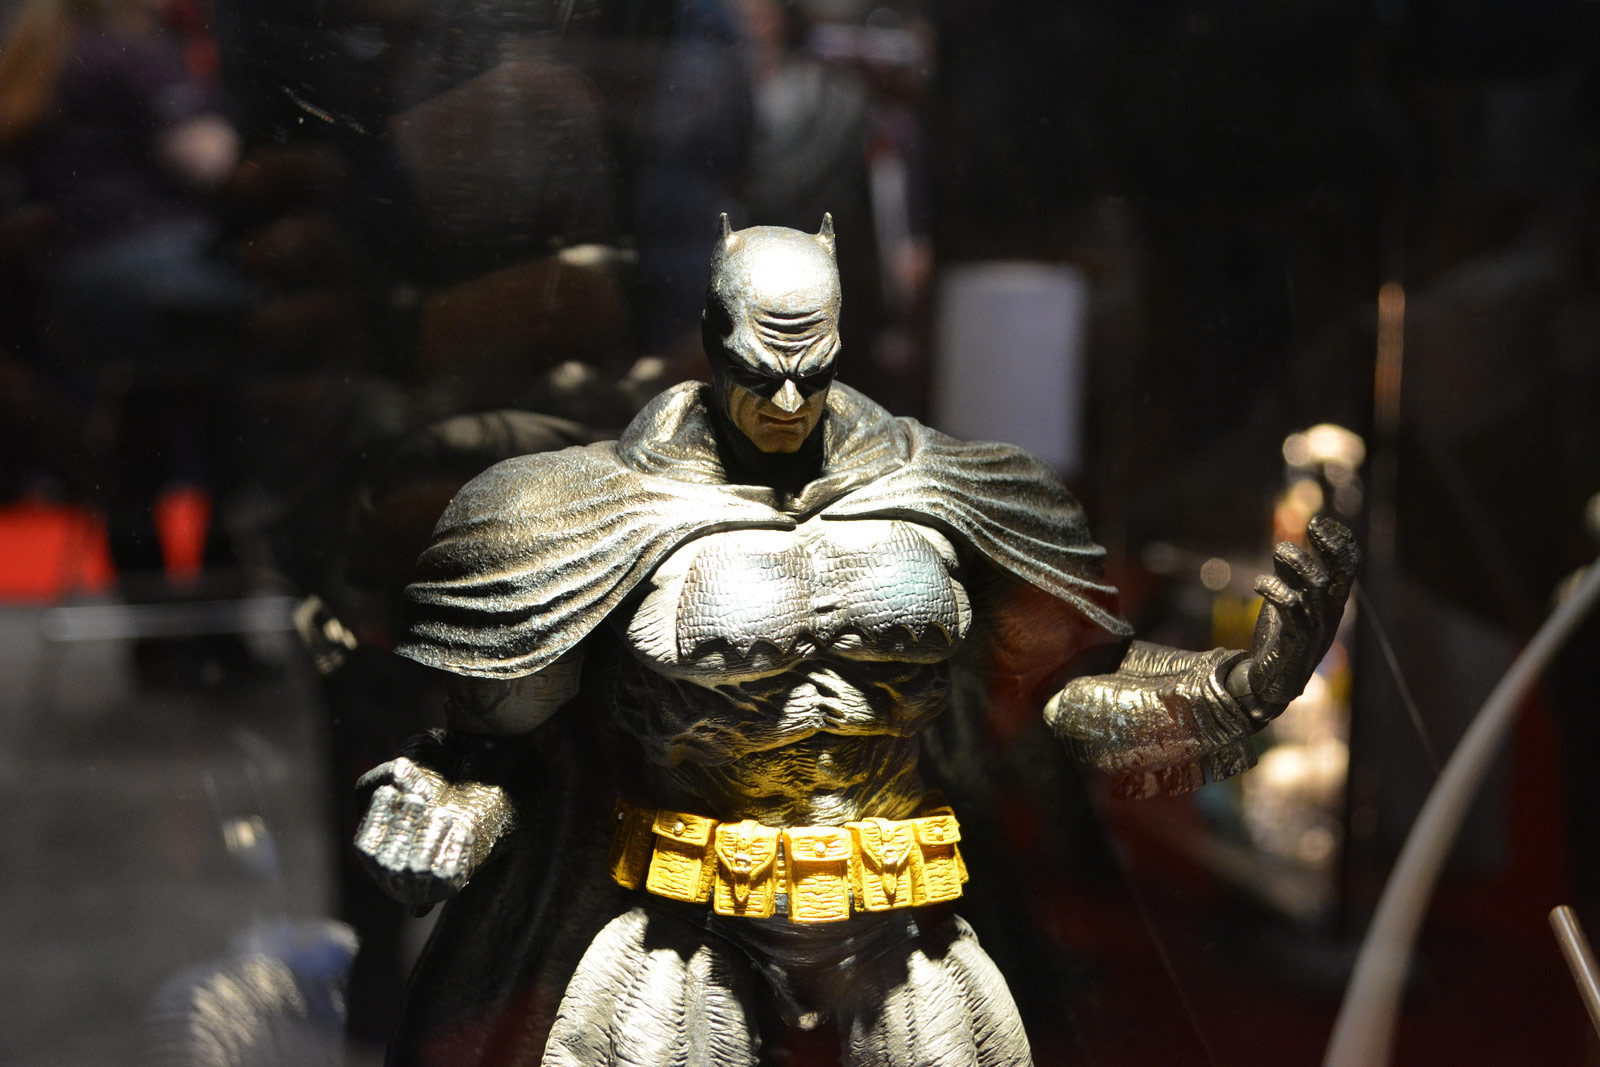 Statue photo from the 2013 New York Comic-Con by Jason24cf #5